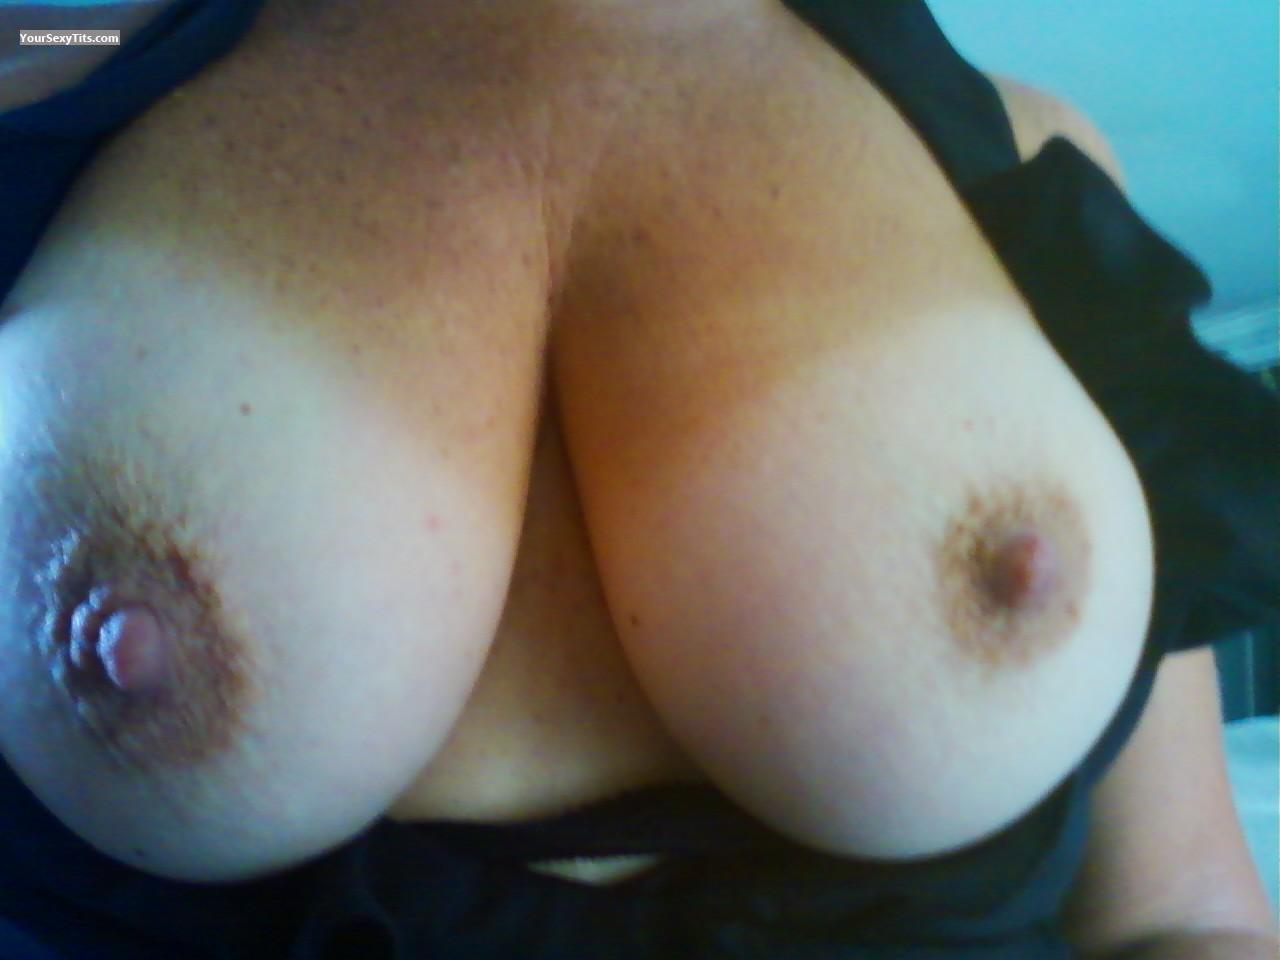 Tit Flash: Very Big Tits - Billtina from United States